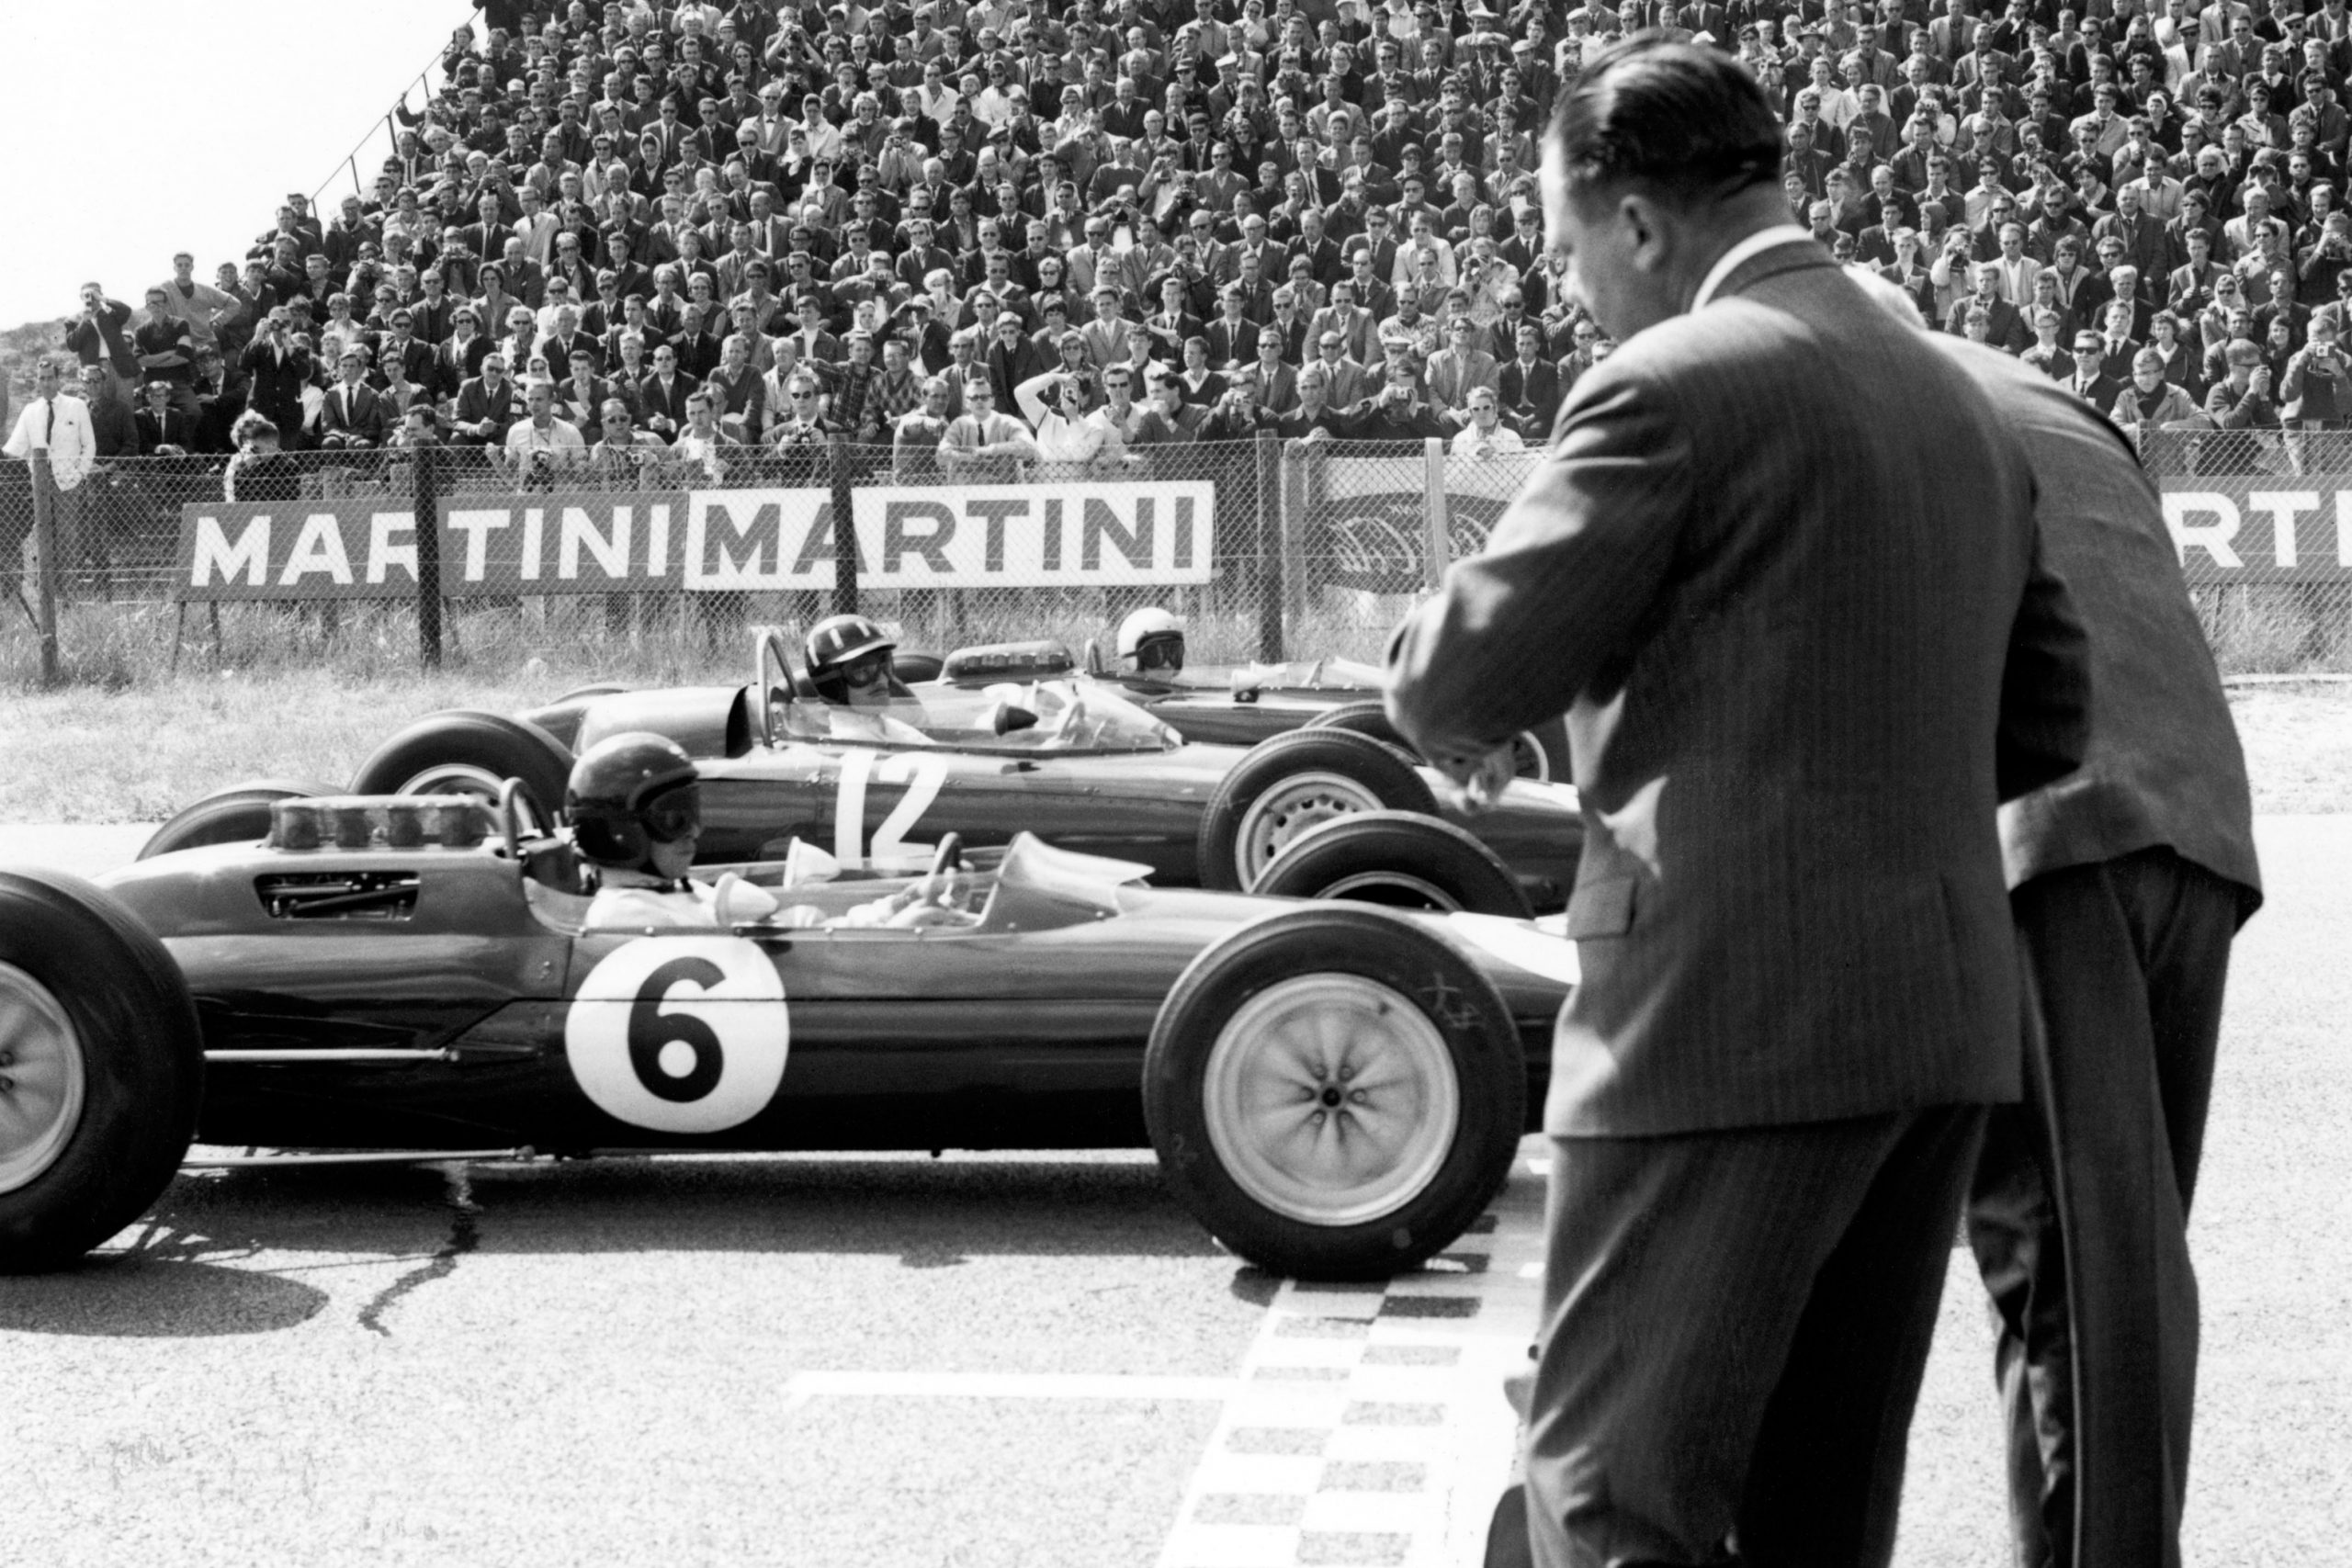 Jim Clark (Lotus 25 Climax) 3rd on the grid, with Graham Hill (BRM P261) 2nd and Dan Gurney (Brabham BT7 Climax) on pole position behind, at the start of the race.